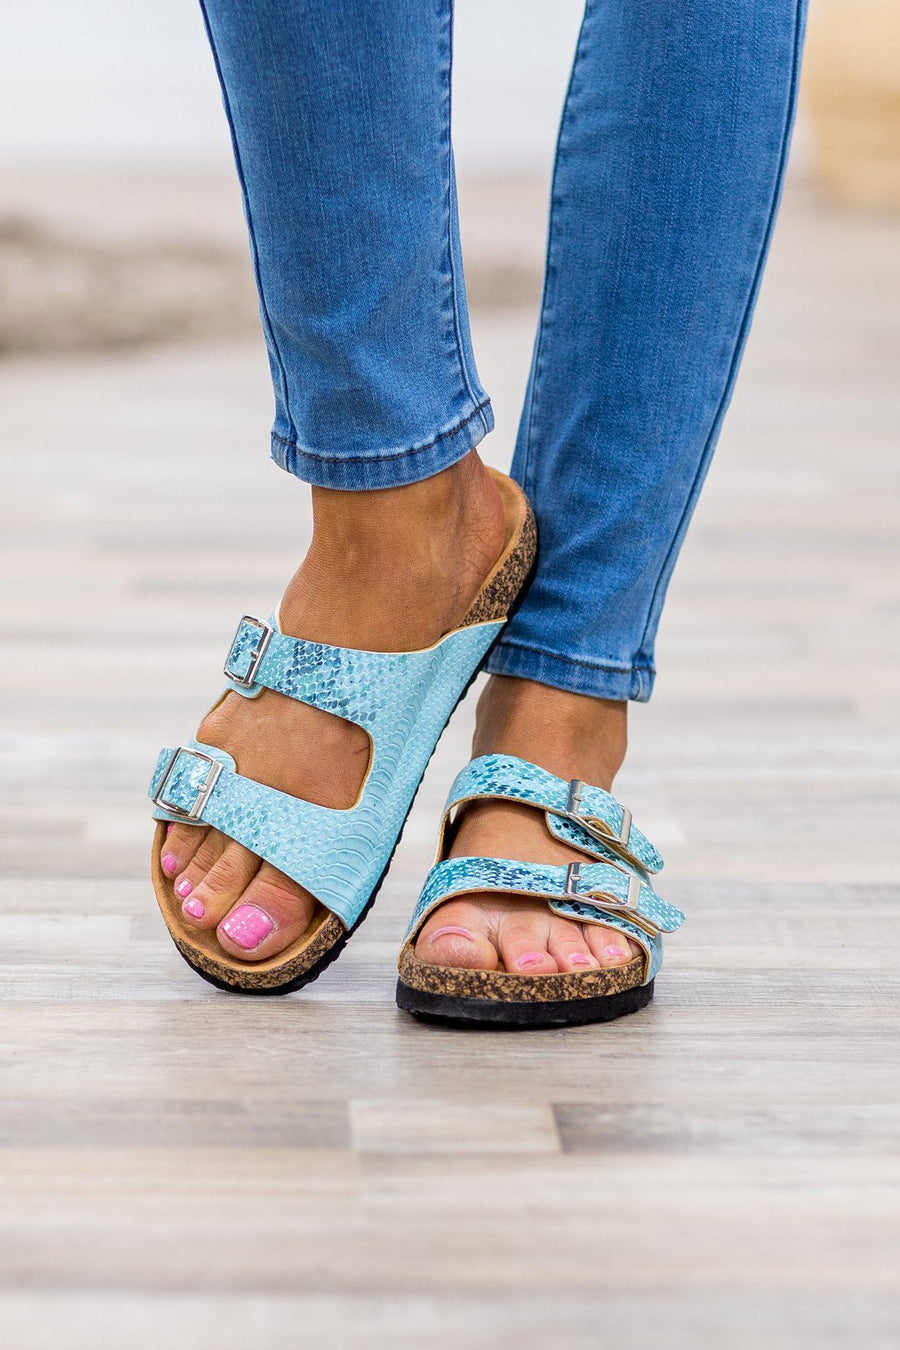 d6ddea72b940 Home for the Summer Light Snakeskin Double Strap Sandals in Light Blue